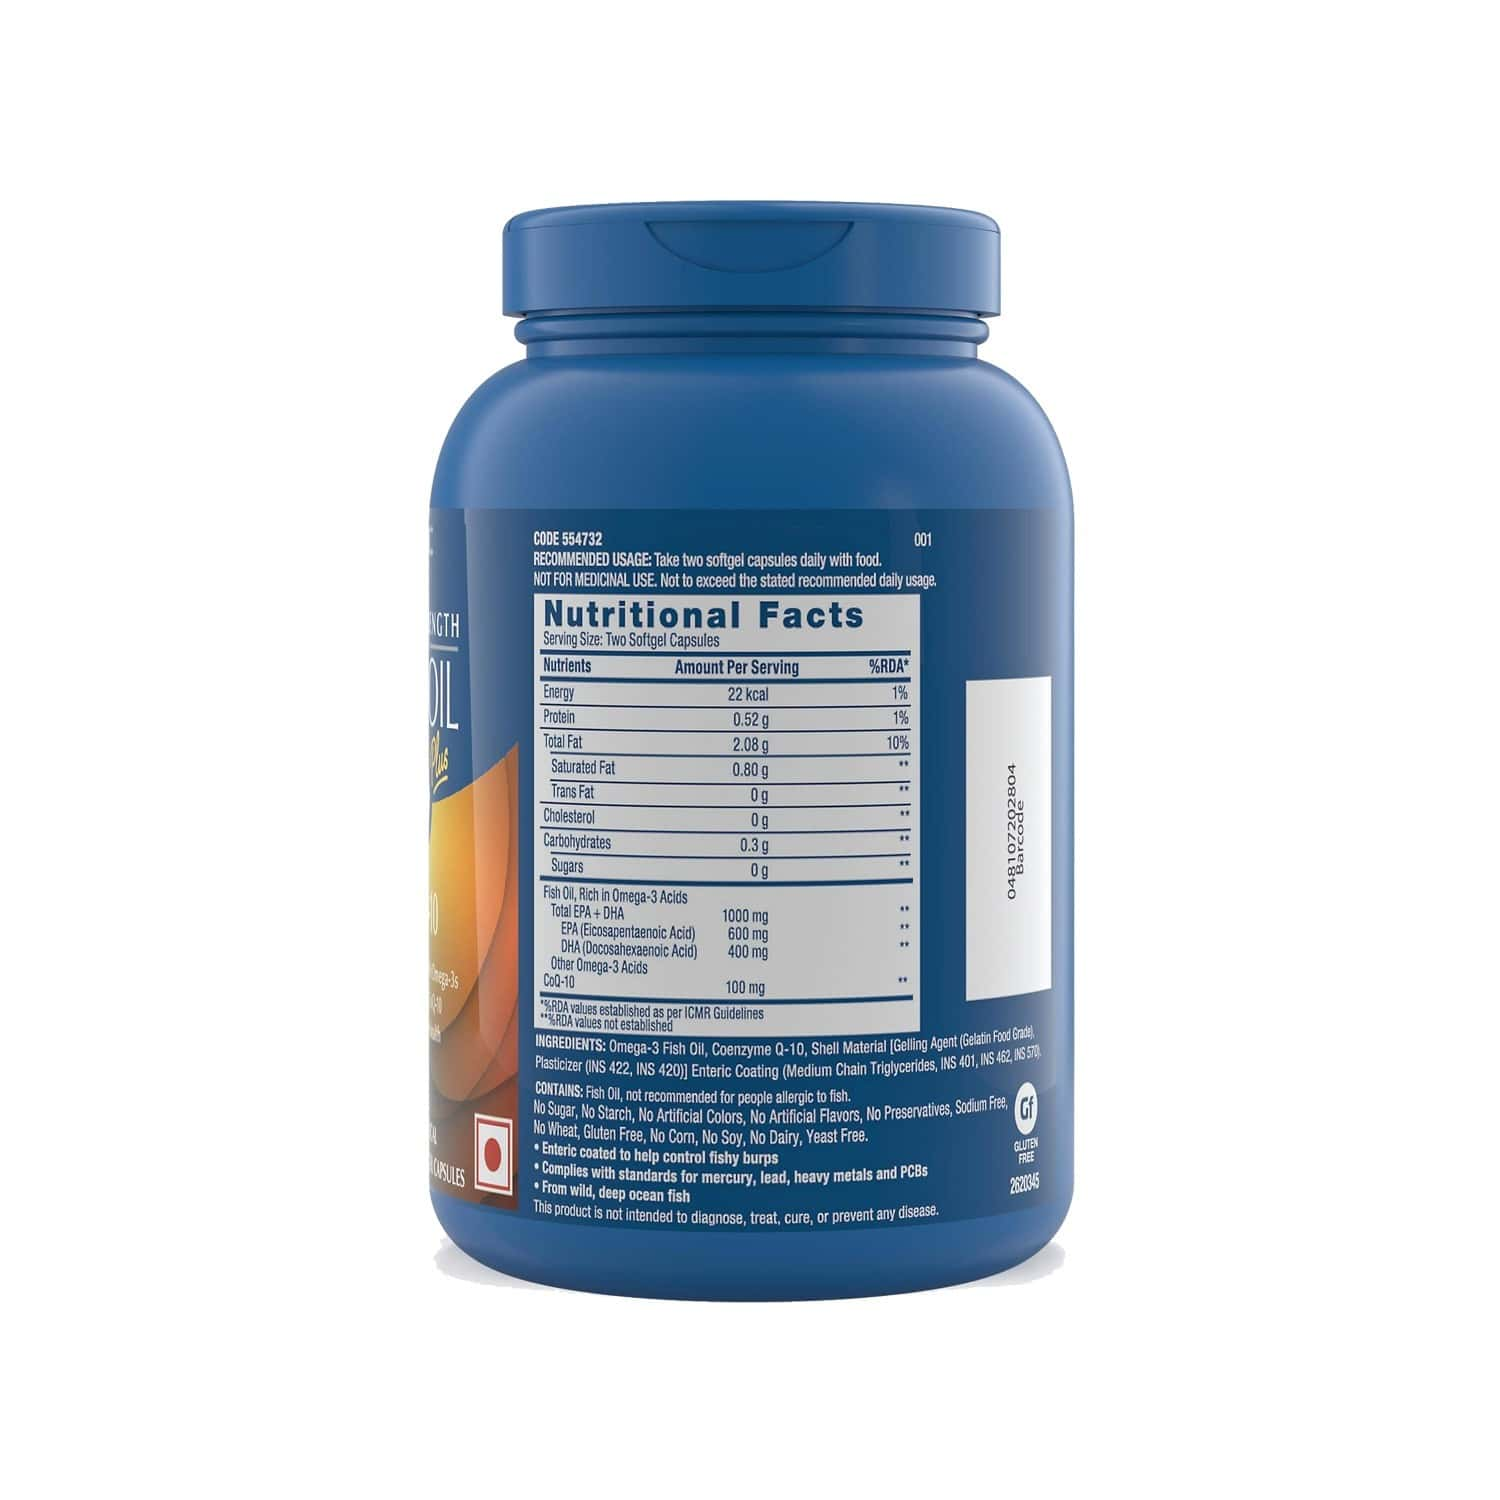 Gnc Triple Strength Fish Oil Plus 1000 + Coq10 - With 1000mg Of Highly Absorbable Epa/dha Omega-3s And 100mg Of Coq10 - 60 Enteric Coated Softgels